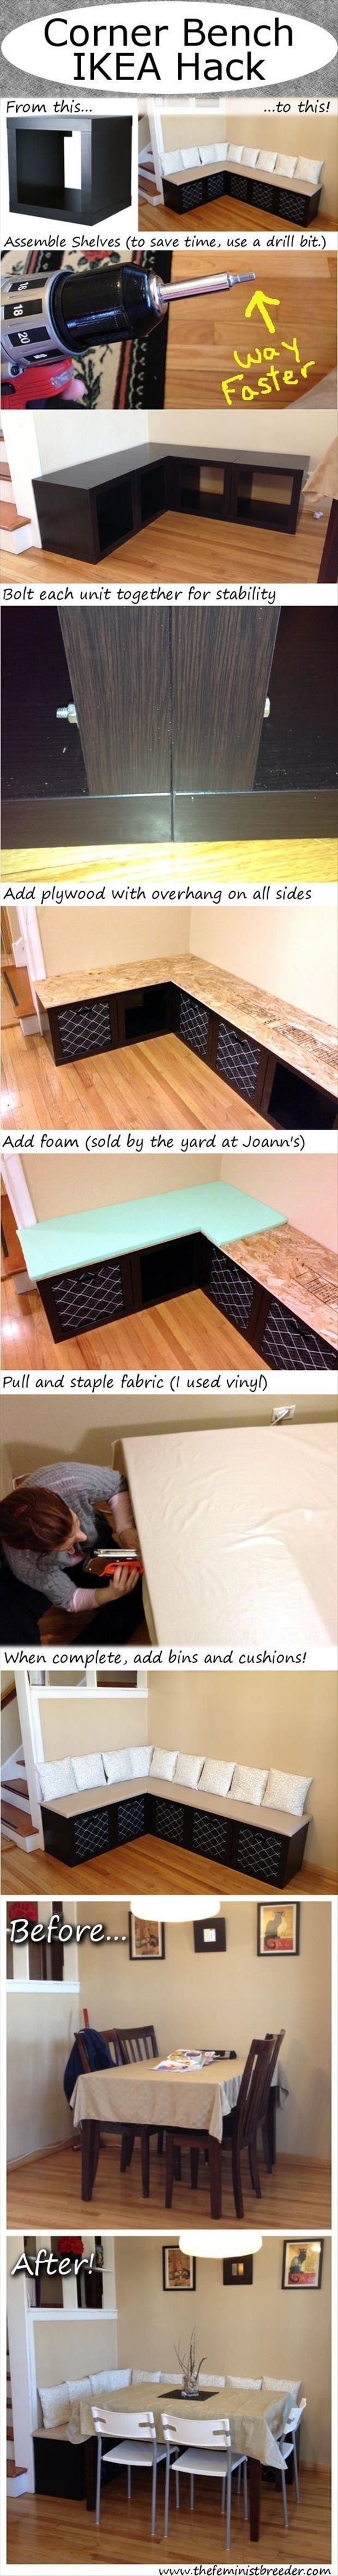 Dump a day fun do it yourself craft ideas 32 pics httpmrspals diy corner bench could use milk crates for this on the small wall in kitchen for storage bench seating for the kitchen eating issue we dont have a solutioingenieria Gallery